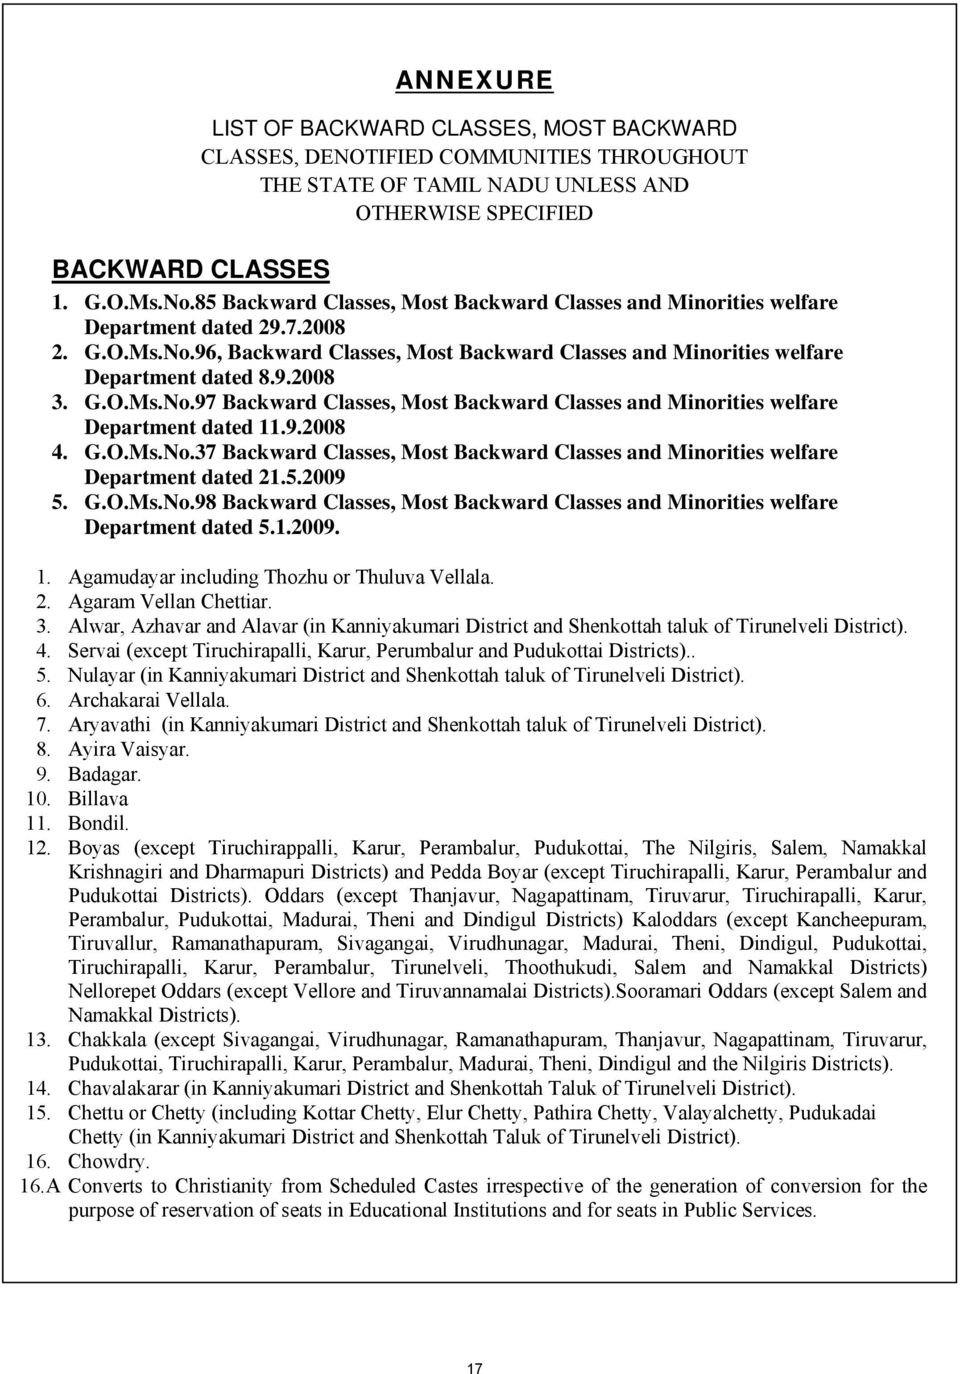 G.O.Ms.No.97 Backward Classes, Most Backward Classes and Minorities welfare Department dated 11.9.2008 4. G.O.Ms.No.37 Backward Classes, Most Backward Classes and Minorities welfare Department dated 21.